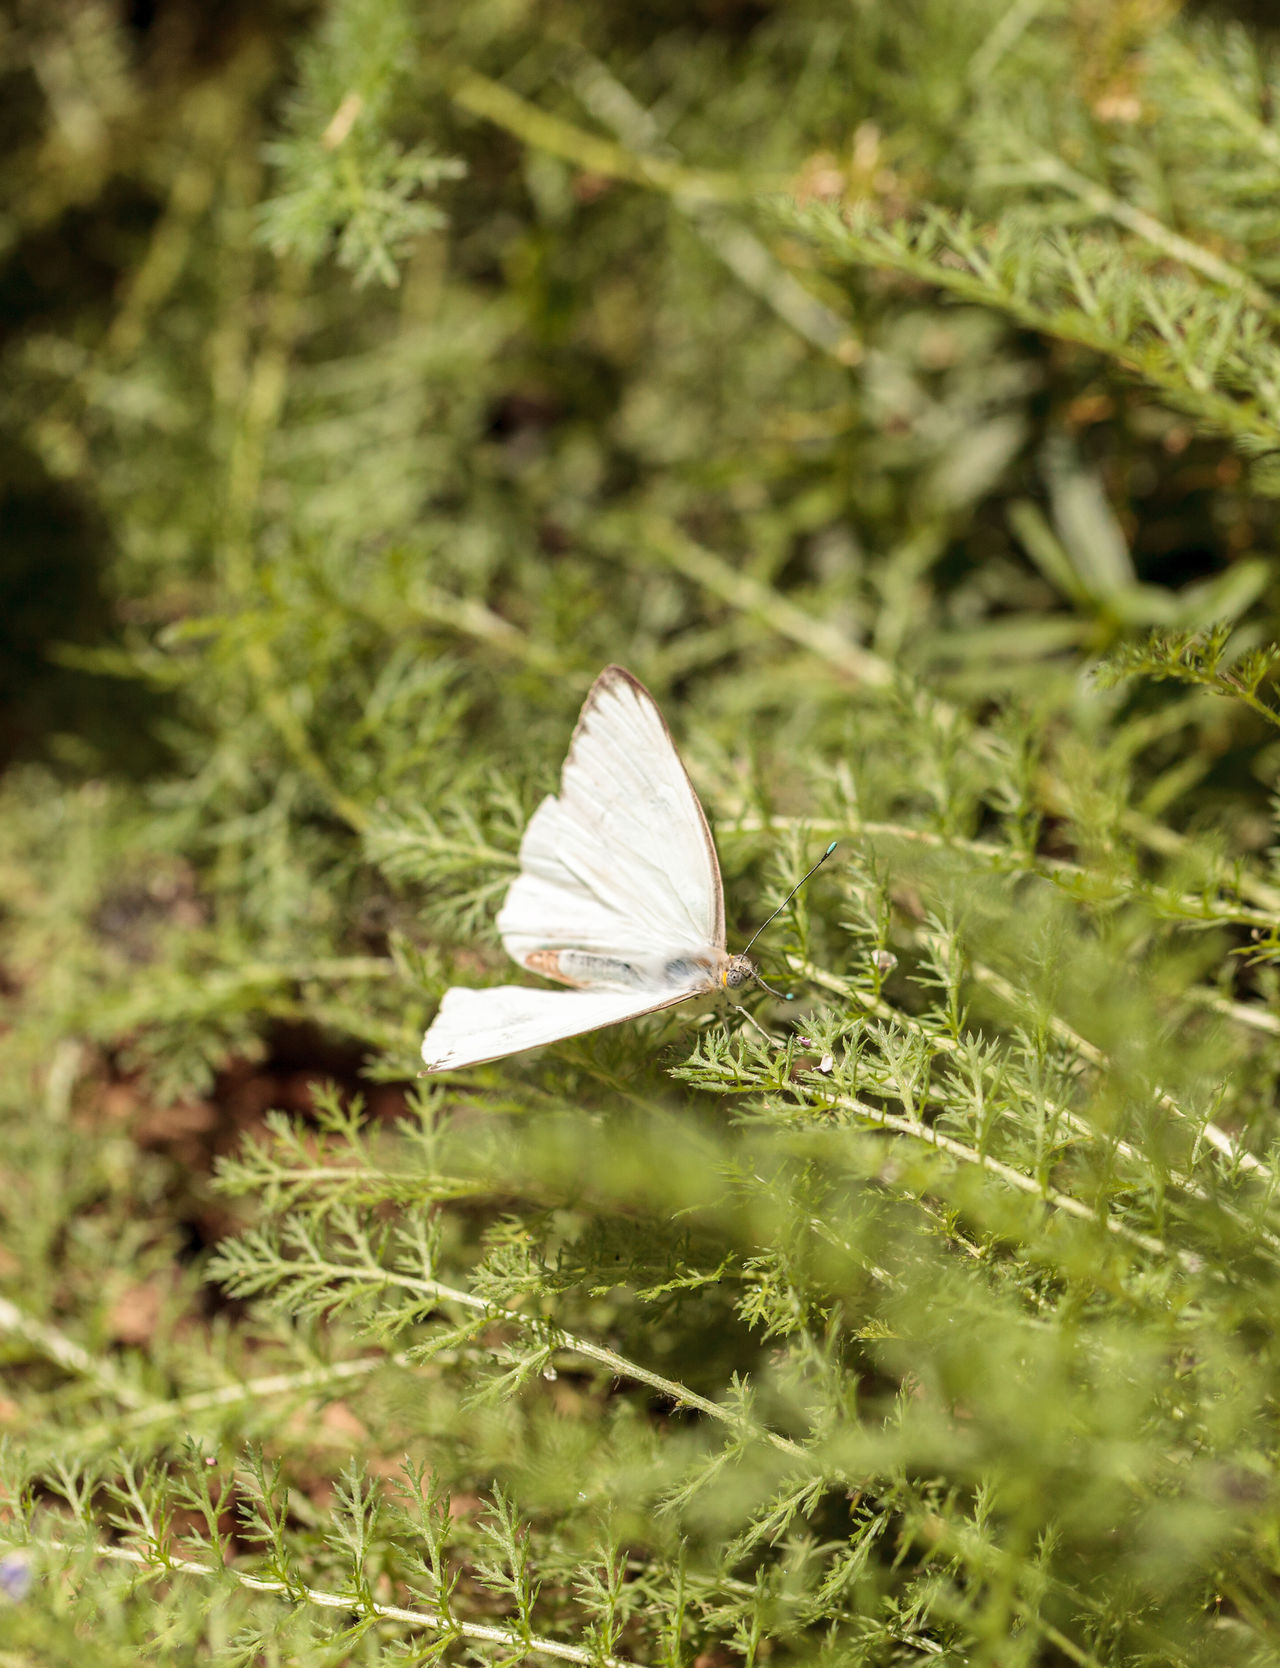 Great southern white butterfly, Ascia monuste, in a botanical garden in spring Ascia Monuste Beauty In Nature Butterfly Close-up Day Flower Fragility Garden Great Southern White Insect Leaf Nature No People Outdoors Spring Wings